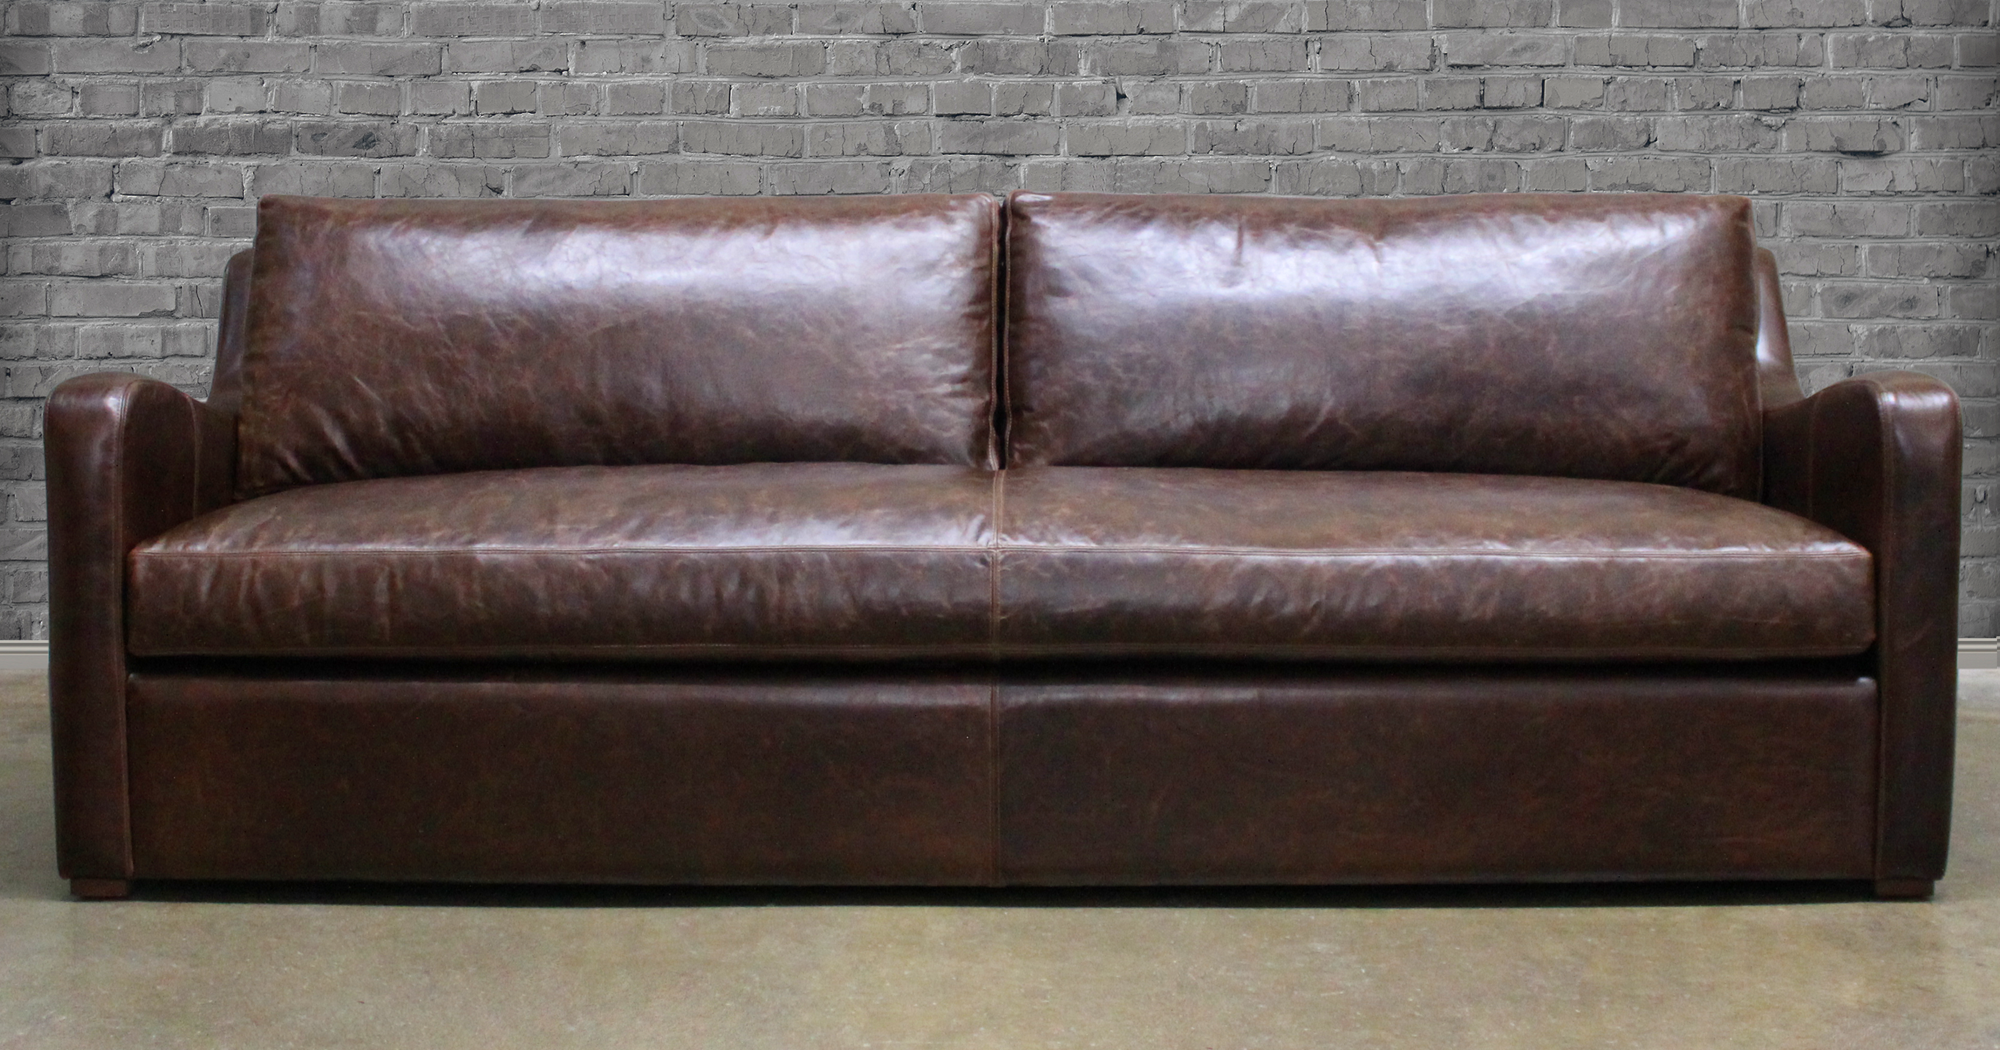 American made leather furniture leather sofas leather for American furniture leather sectional